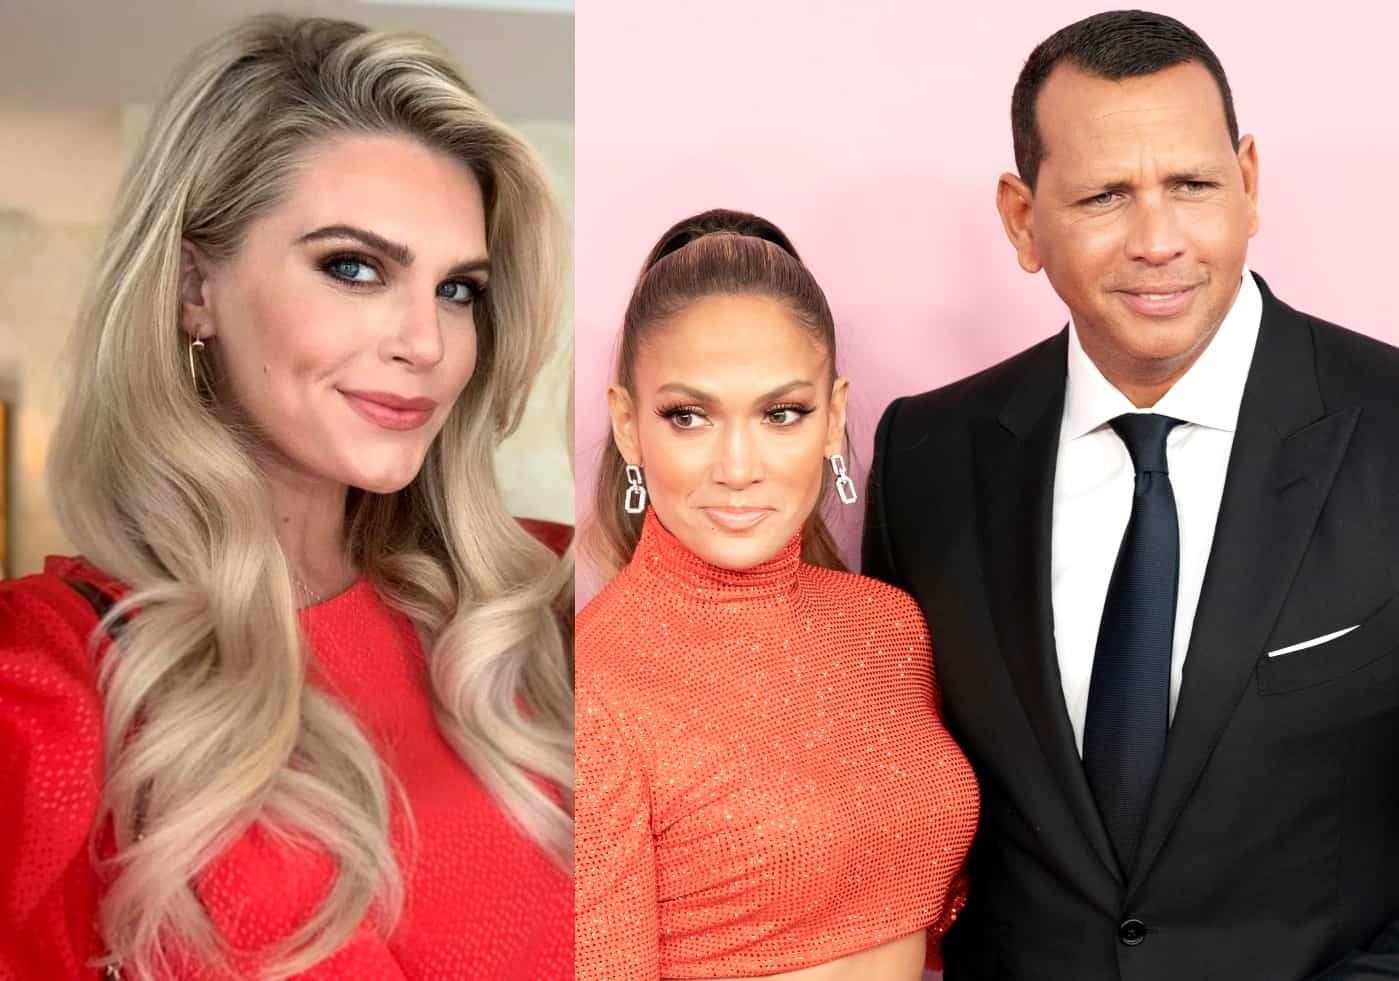 "Madison LeCroy Confirms Phone Conversations With Alex ""A-Rod"" Rodriguez But Denies Physical Relationship, Southern Charm Star Reveals Types of Calls They Had and When They Took Place as He Steps Out With Fiance Jennifer Lopez"